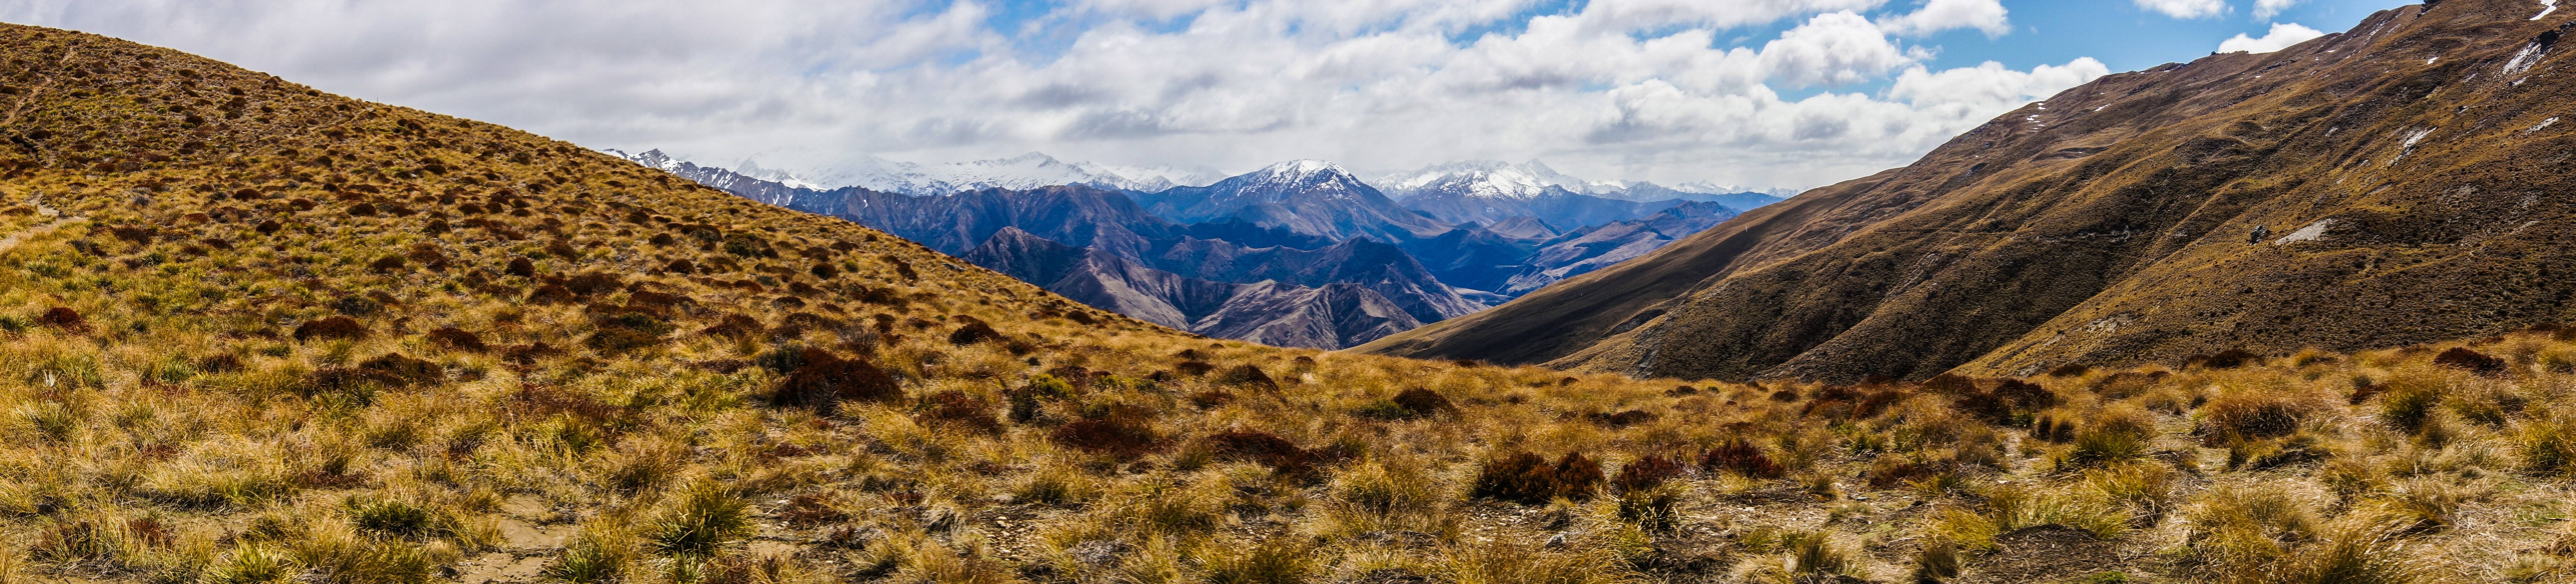 Southern Alps From Ben Lomonds Saddle Queenstown NZ wallpaper